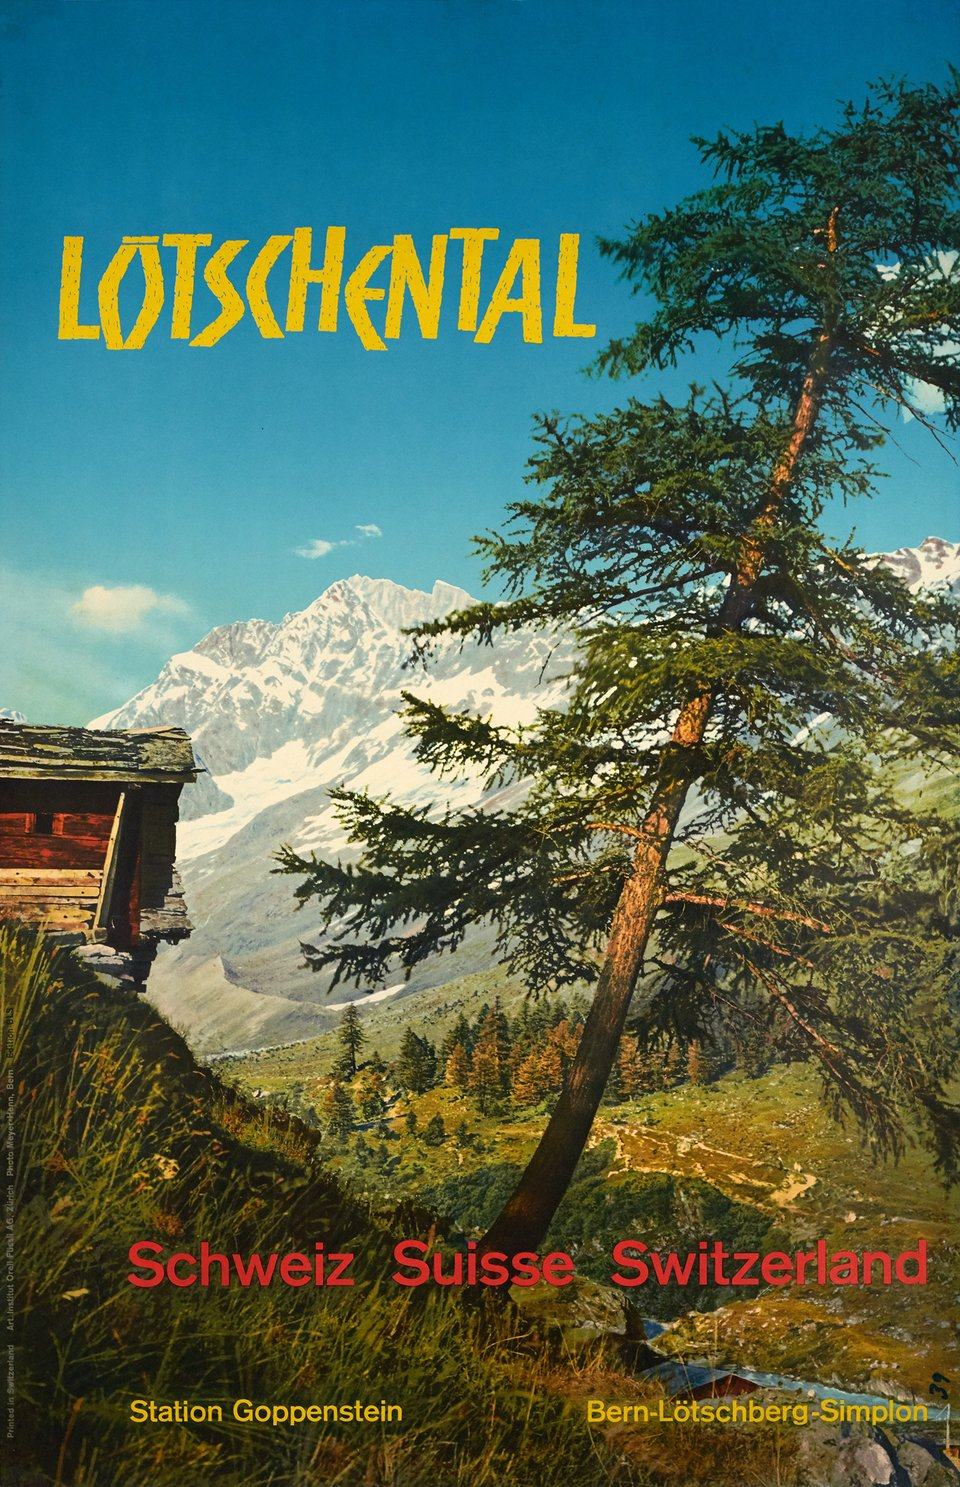 Lötschental BLS, Schweiz, Suisse, Switzerland – Affiche ancienne –  MEYER-HENN – 1960